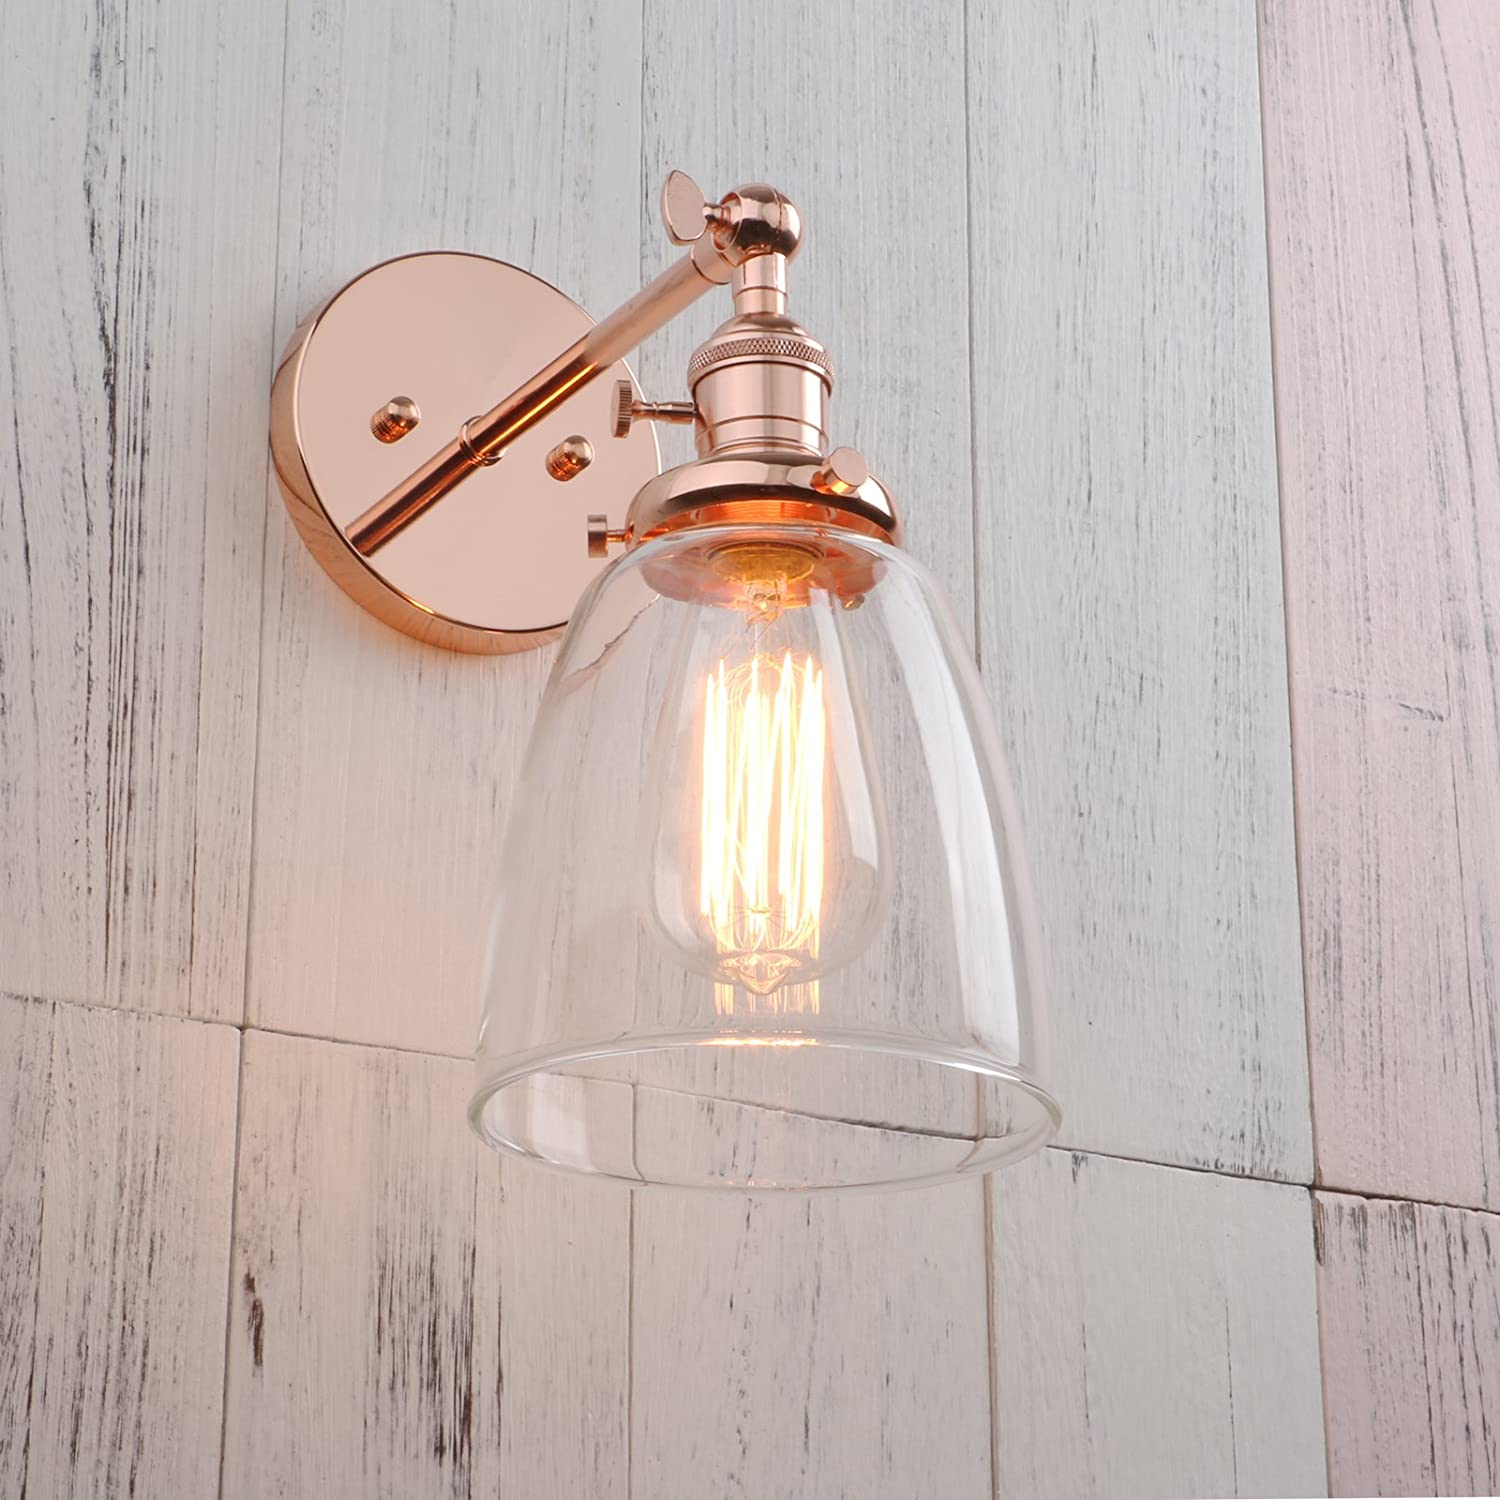 Antique Permo Industrial Vintage Single Sconce With Oval Cone Clear Glass Shade 1-light Wall Sconce Wall Lamp